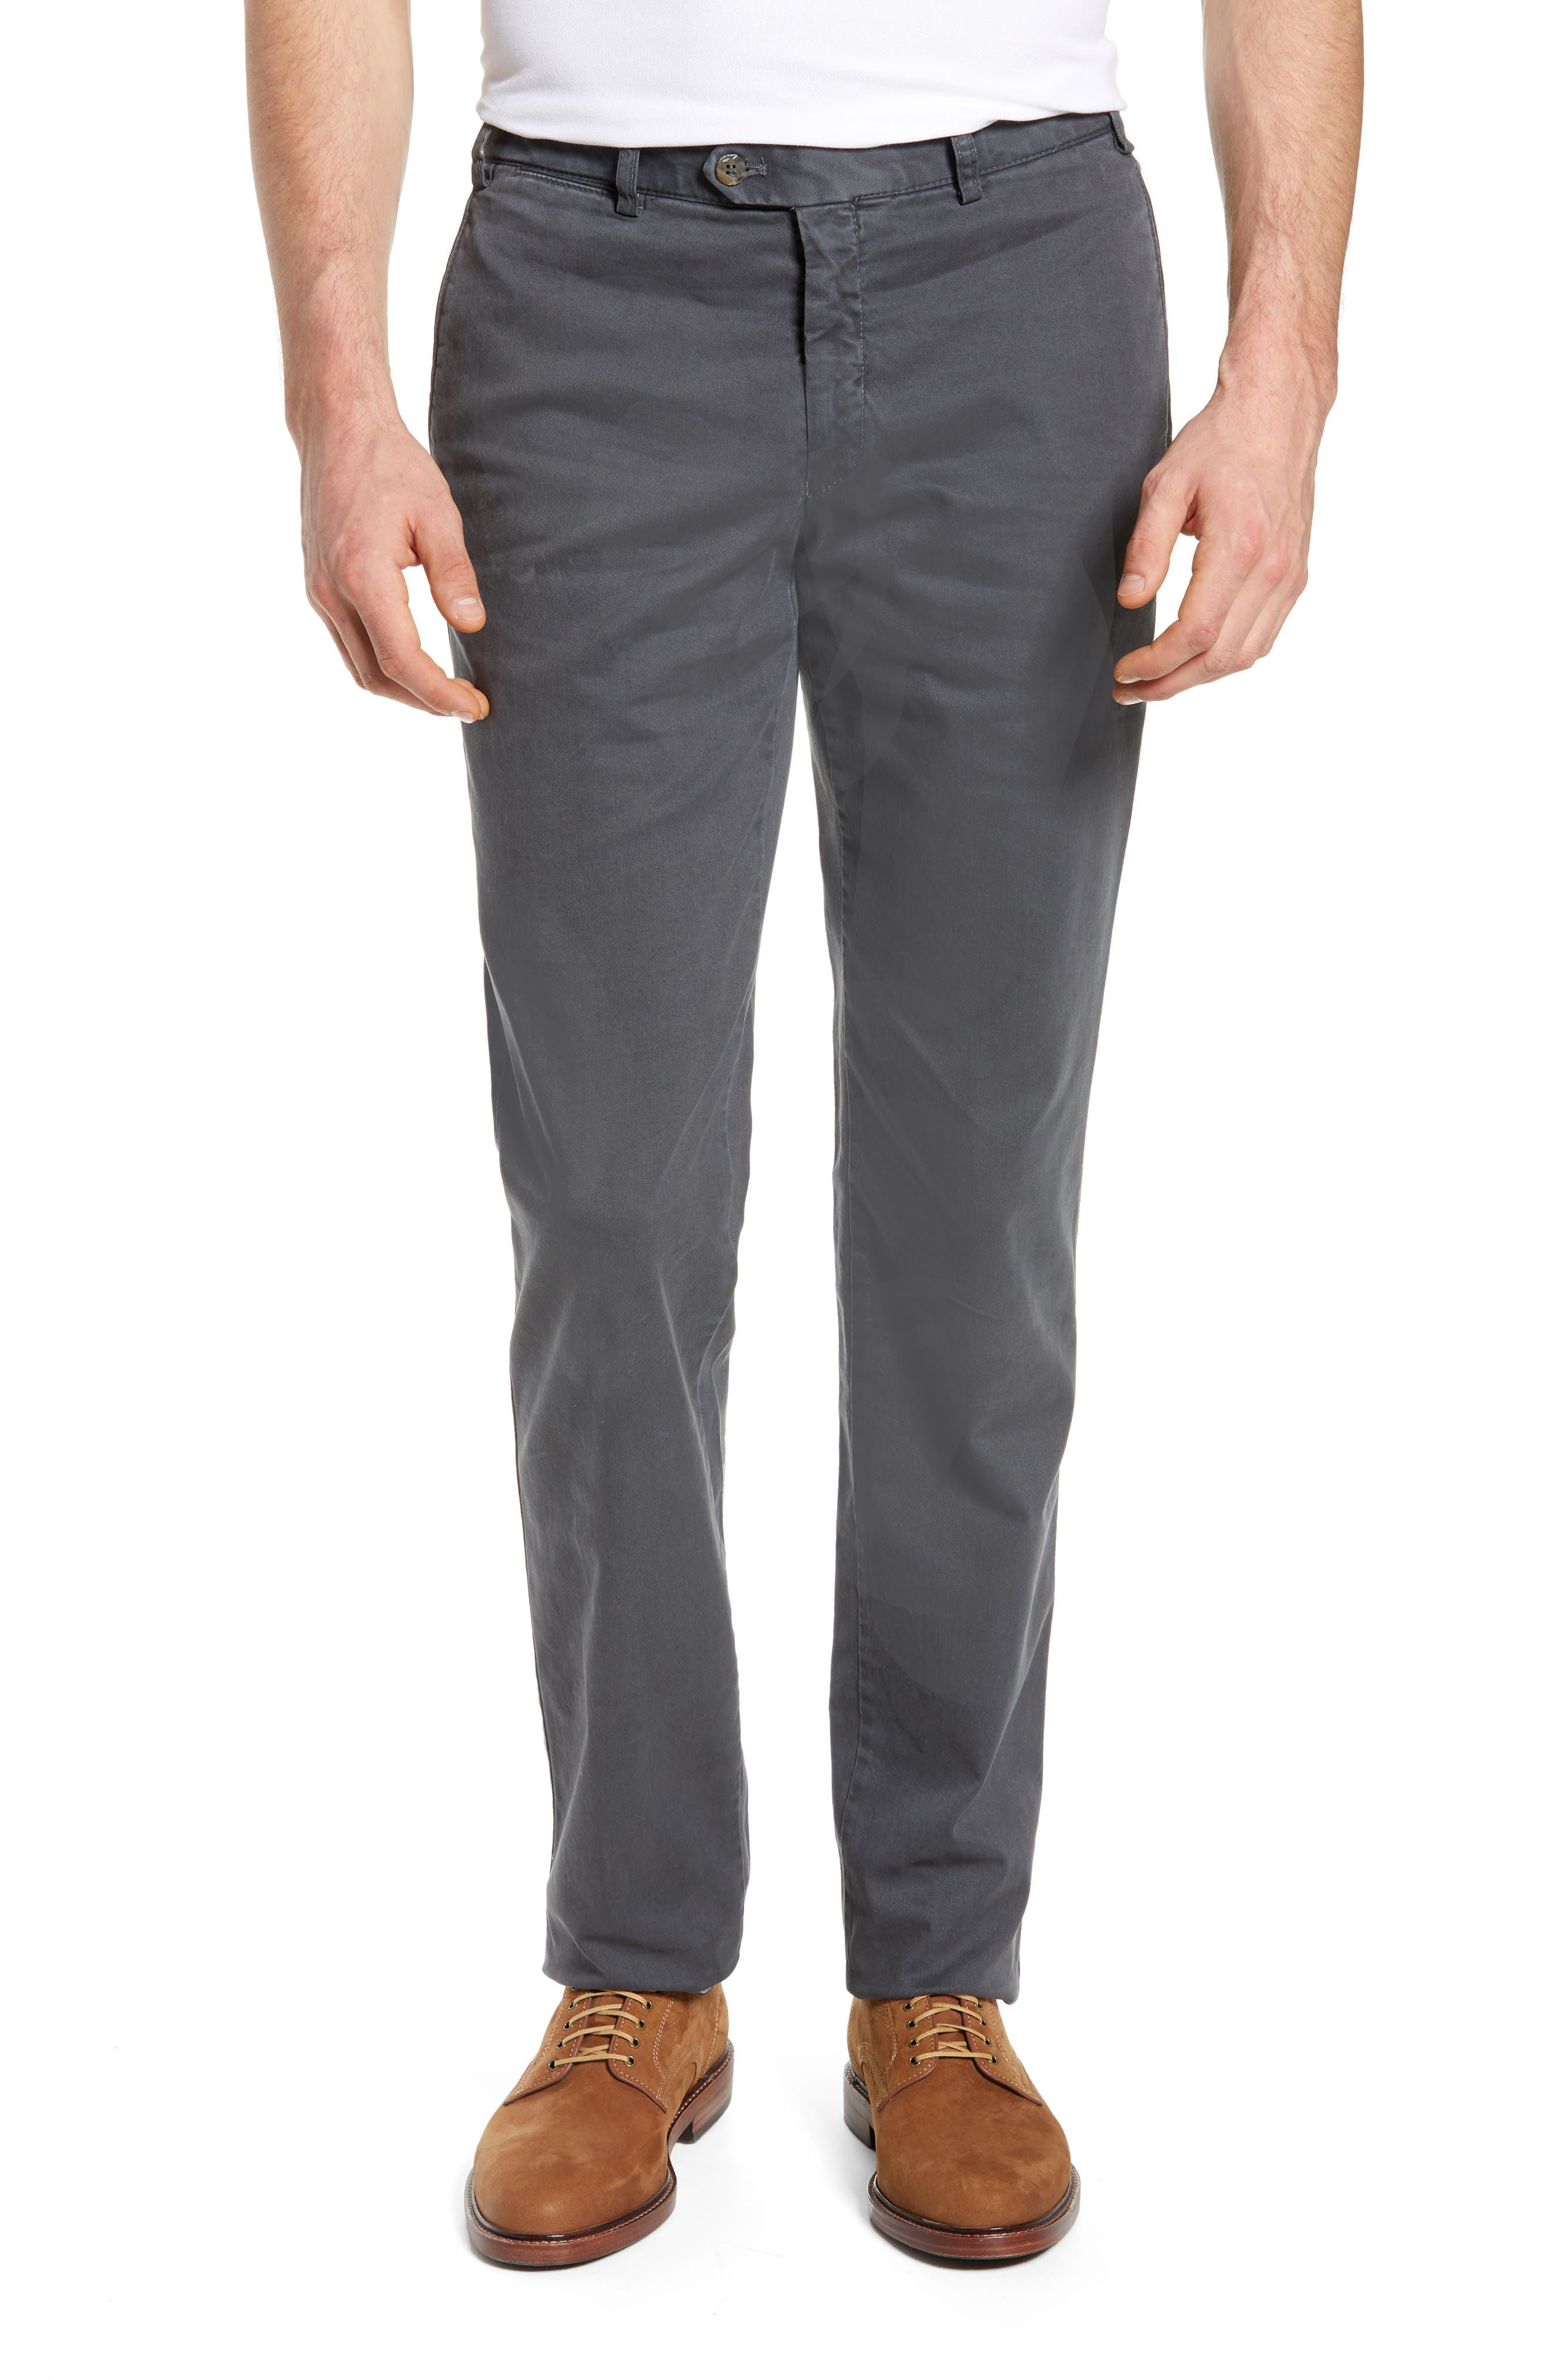 Pero Trim Fit Flat Front Chino Trousers,                         Main,                         color, GREY